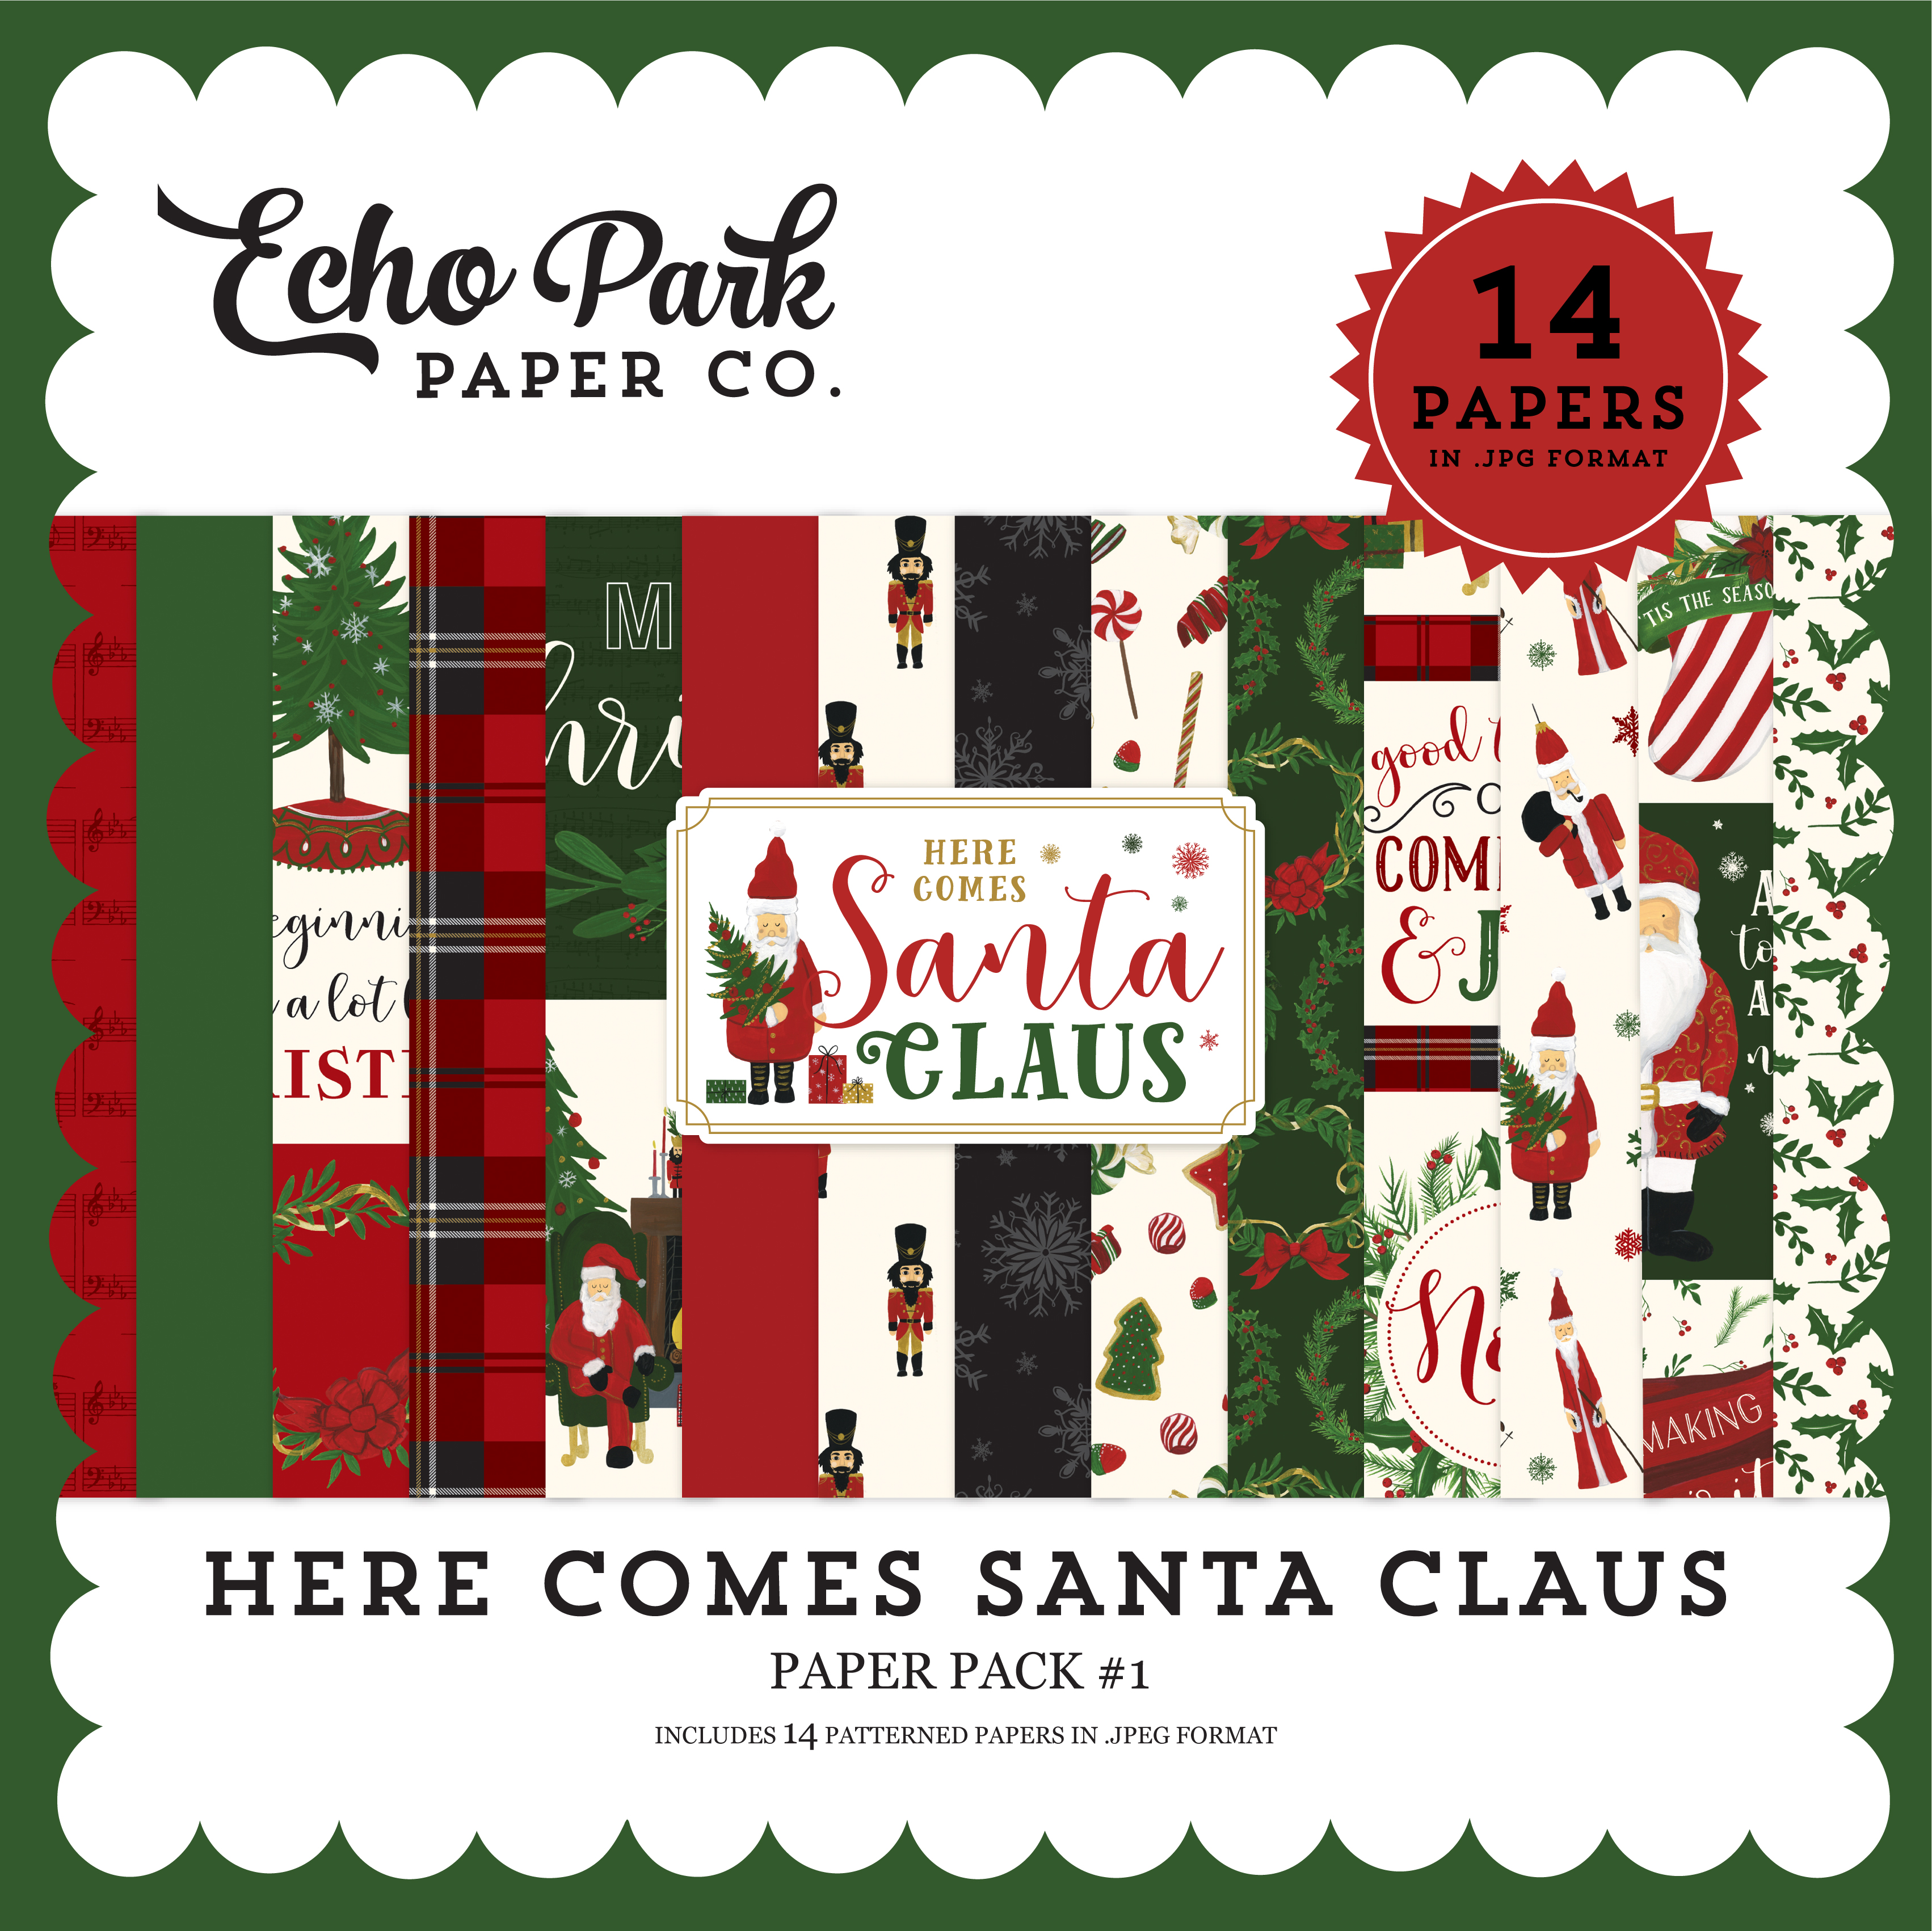 Here Comes Santa Claus Paper Pack #1